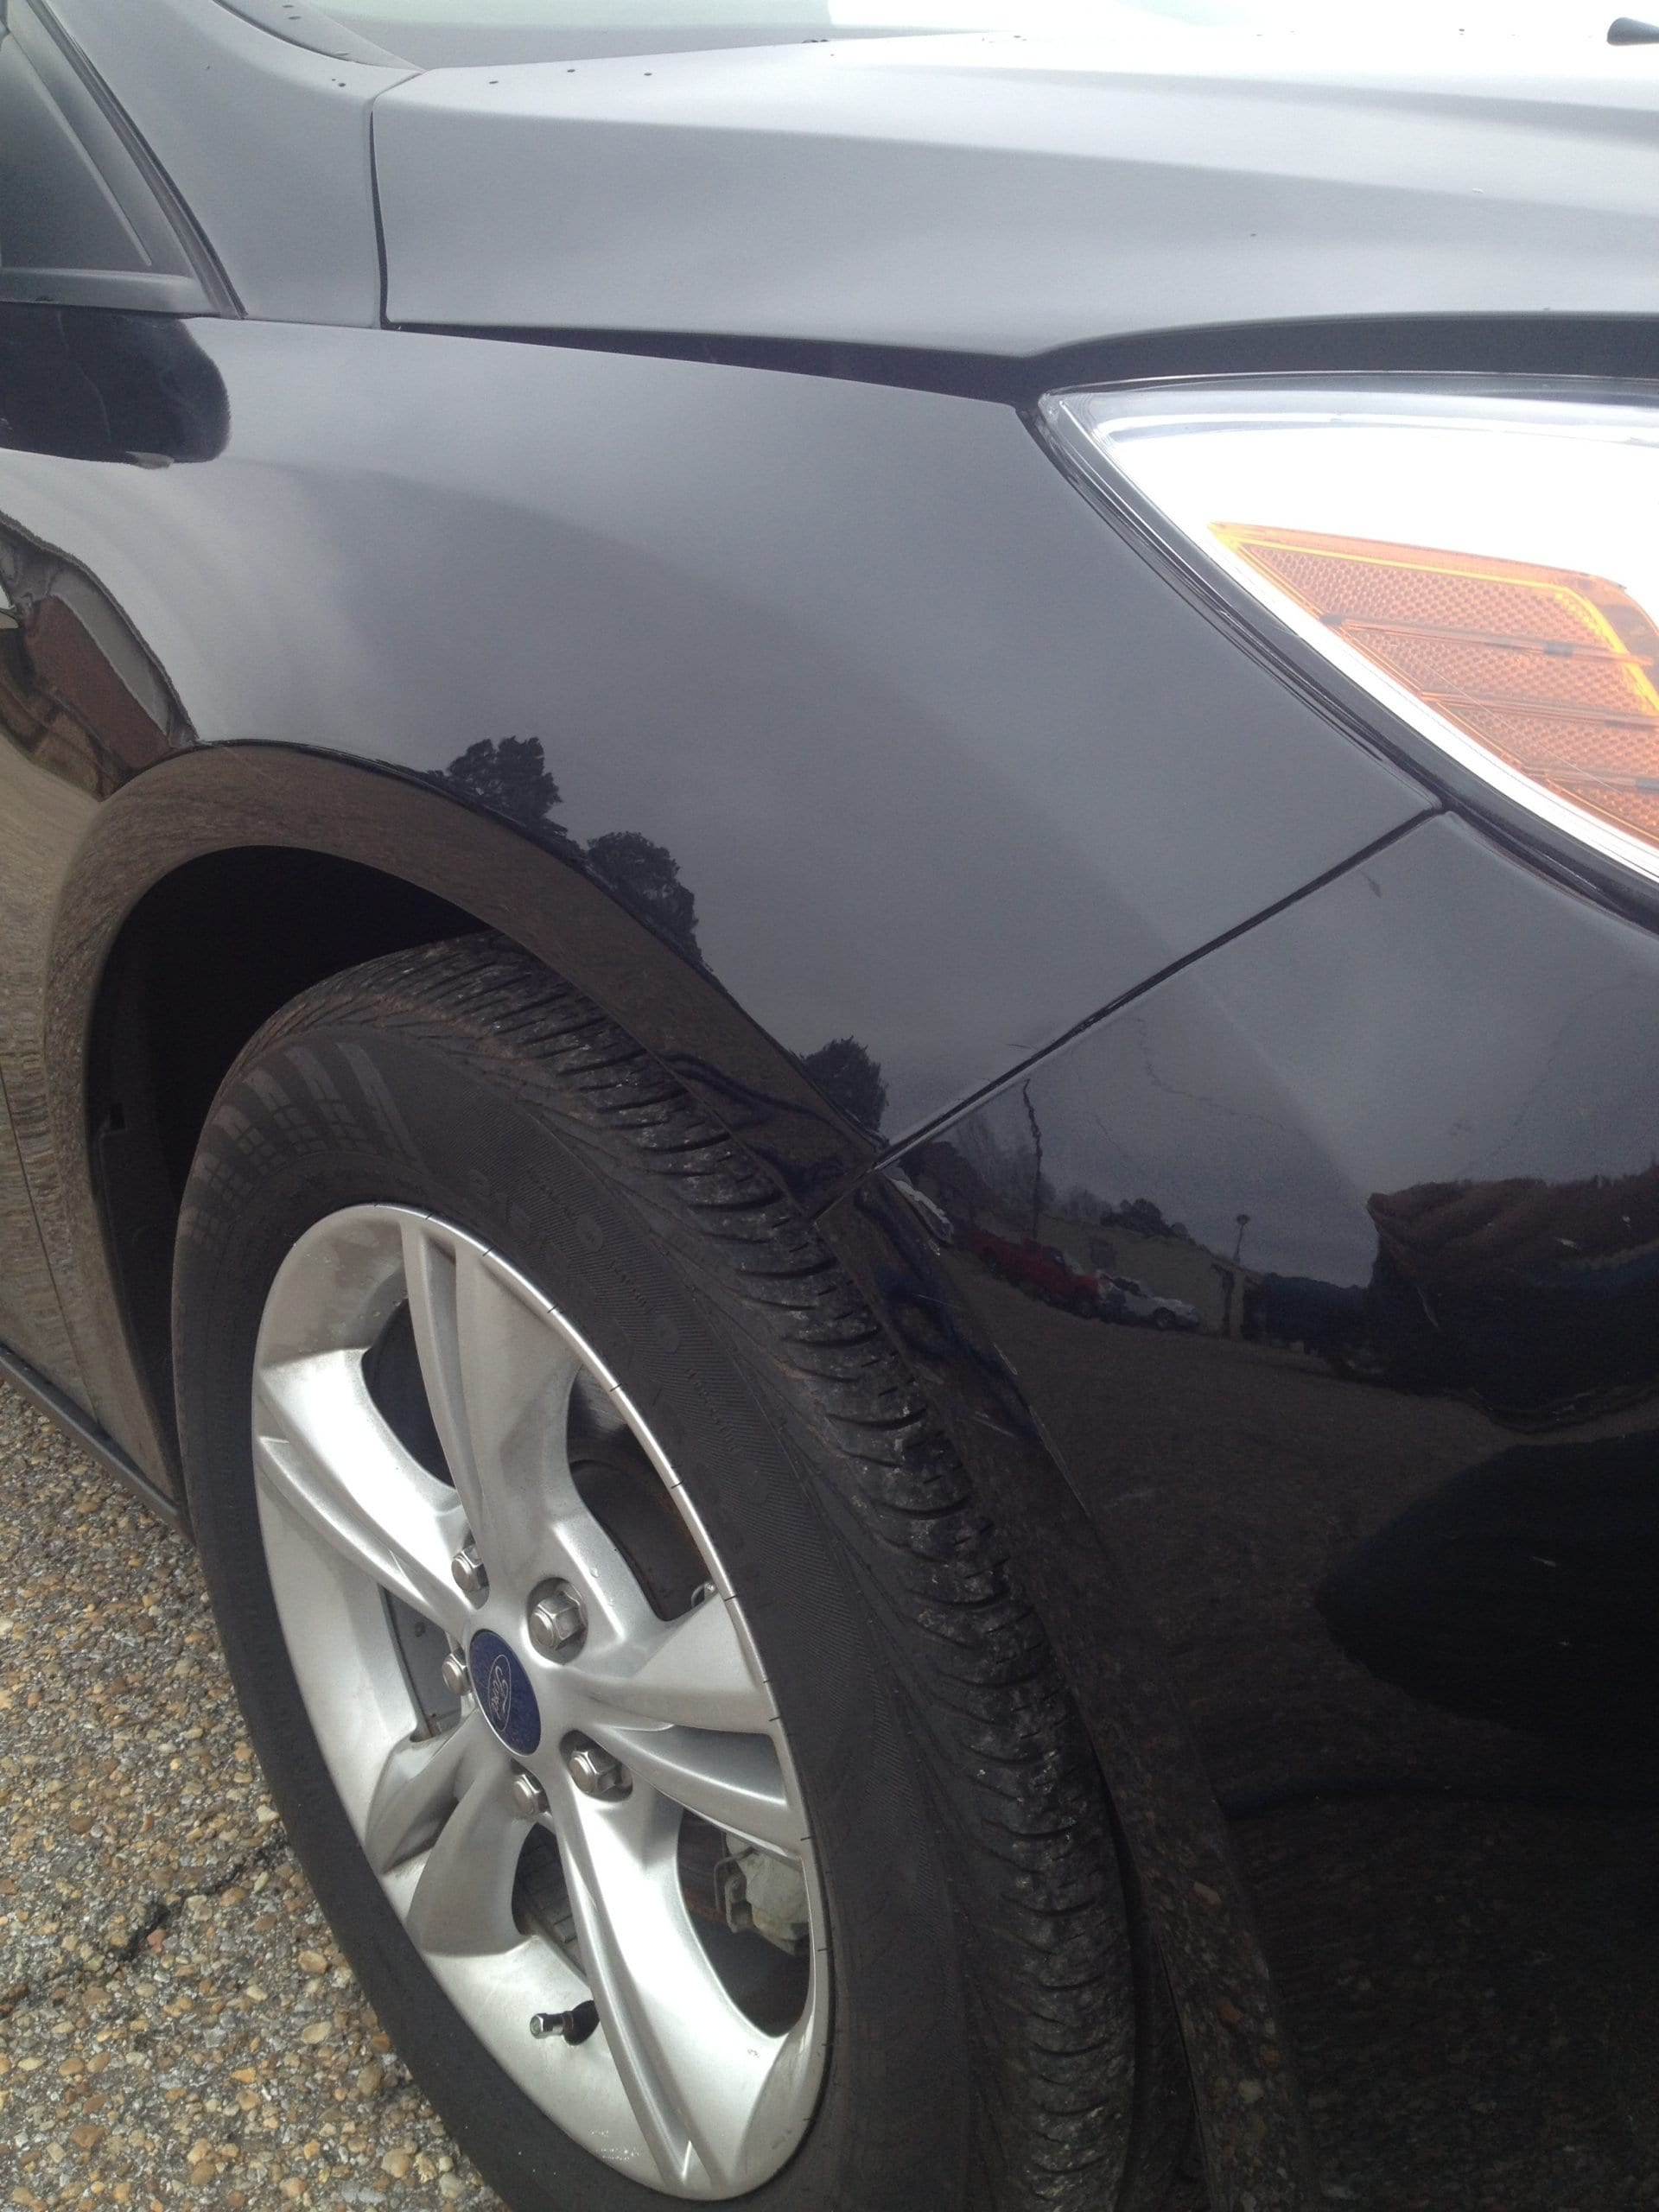 PDR experts based in Montgomery Alabama - After Repair